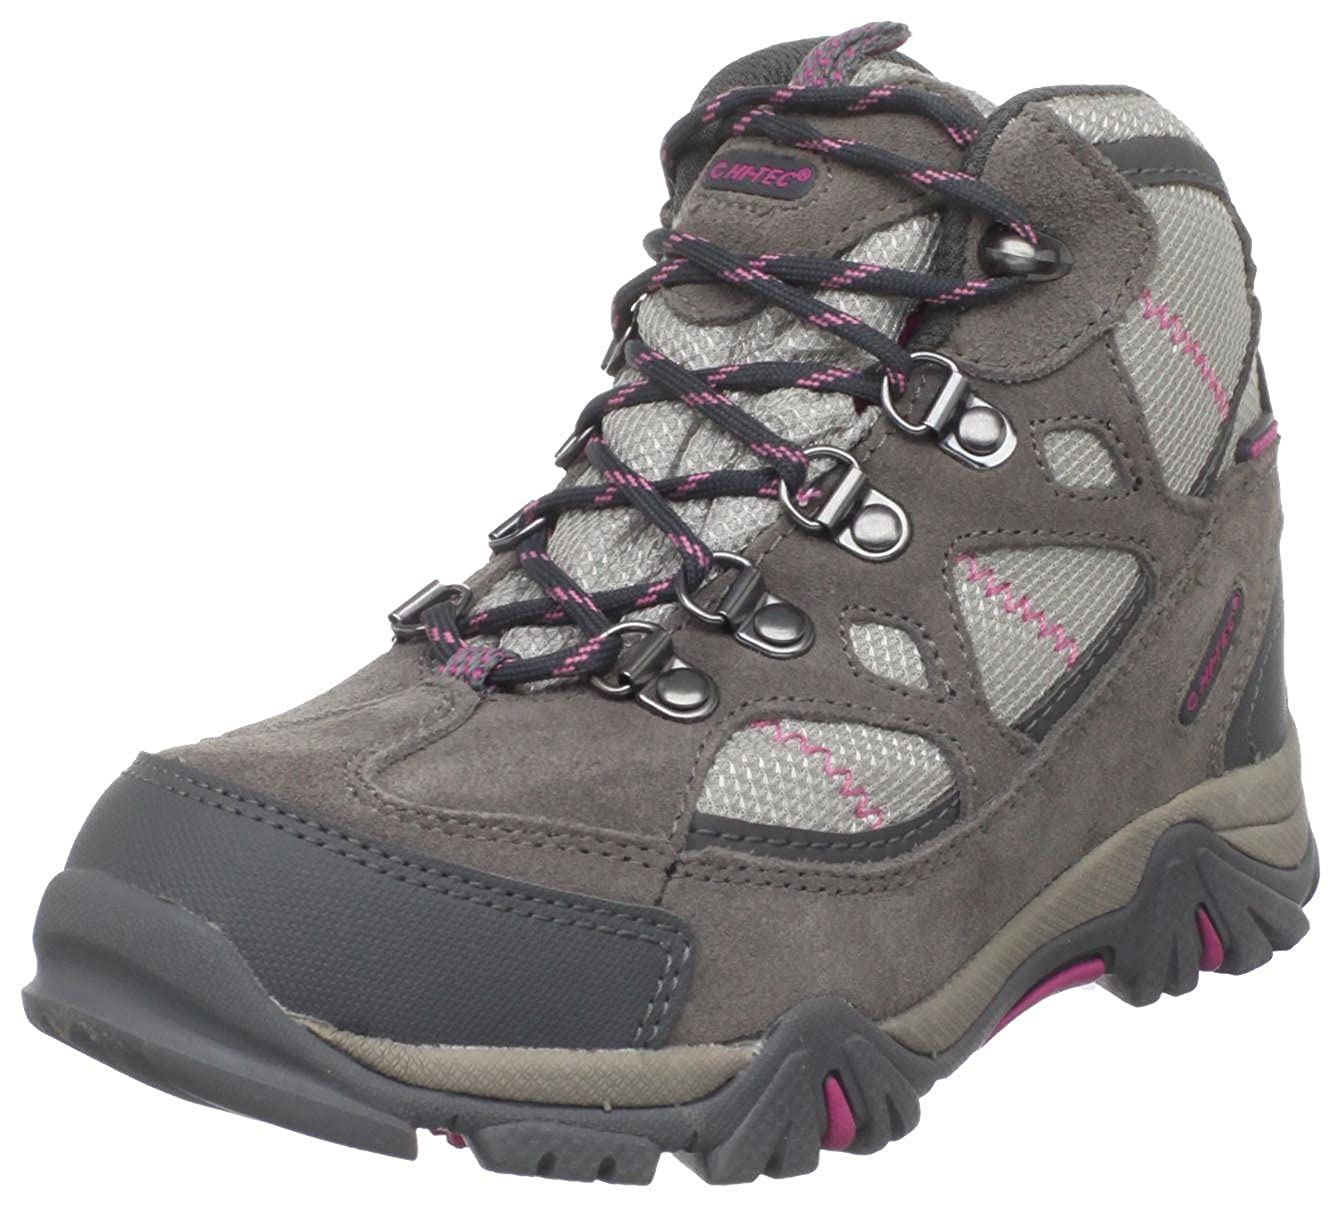 Hi-Tec Renegade Trail WP Hiking Boot (Toddler/Little Kid/Big Kid)